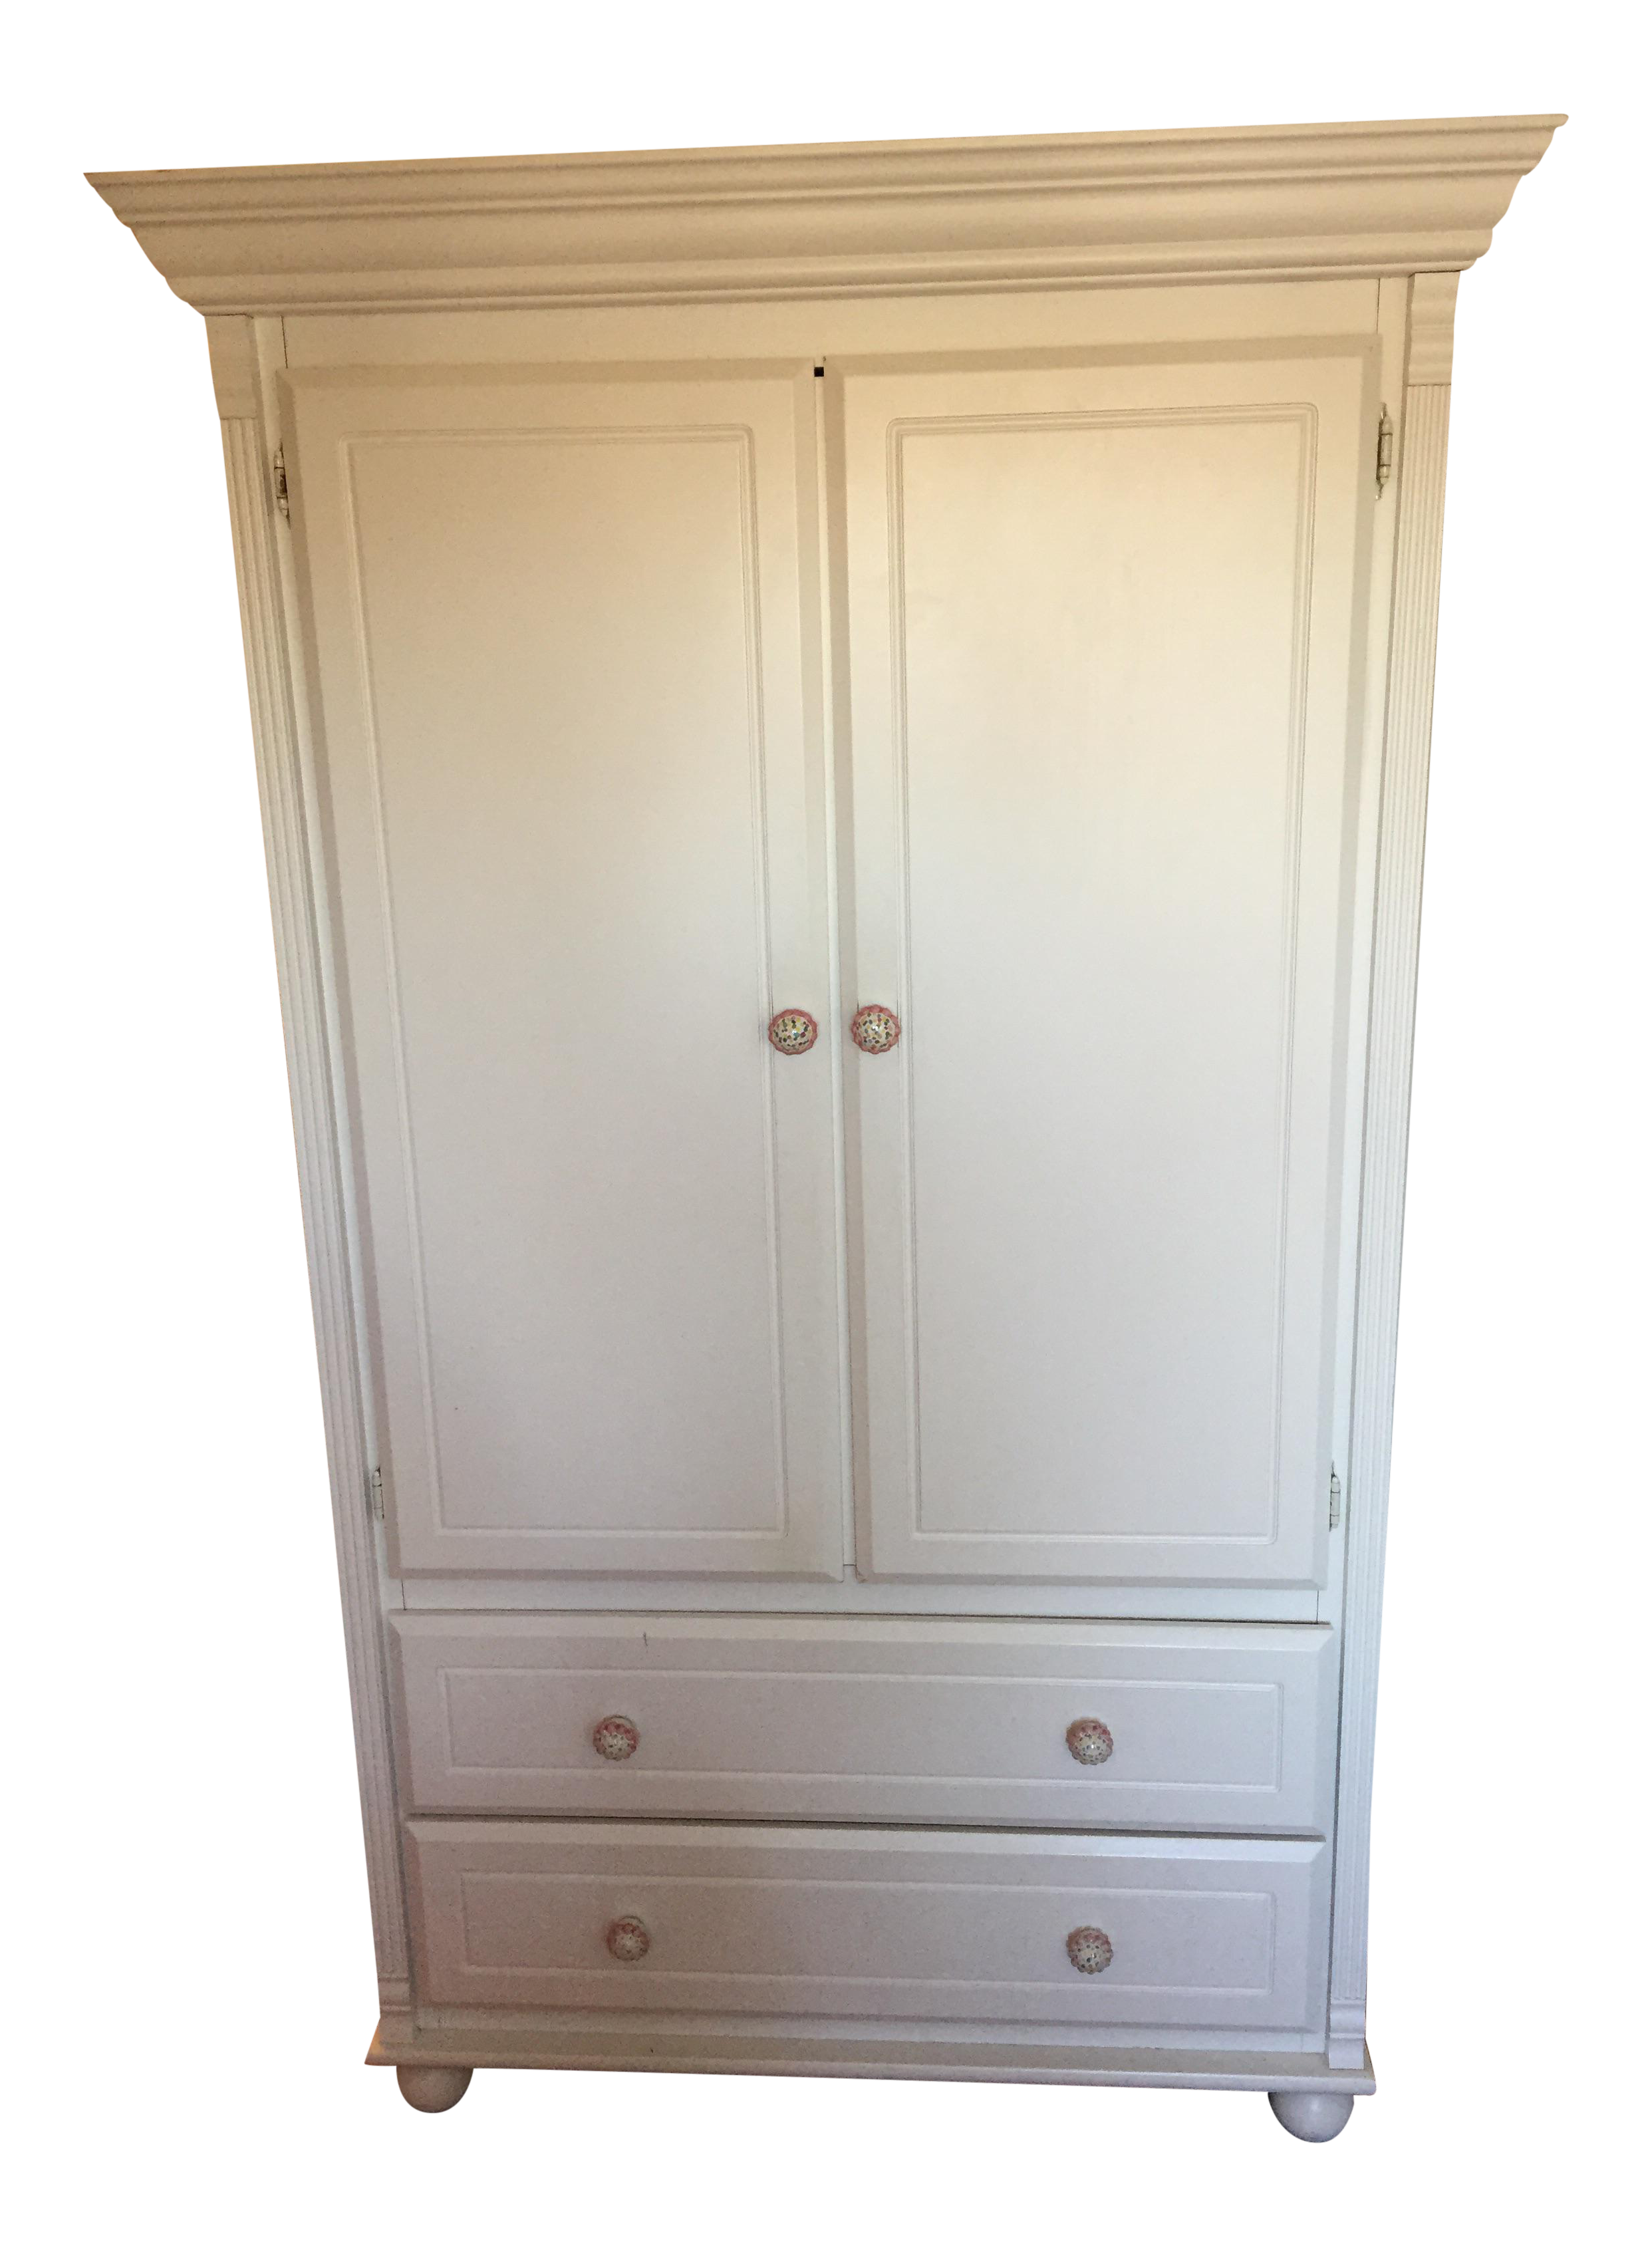 rod bedroom with furniture cheap hanging wardrobes grey white wood closet solid chest wardrobe armoire